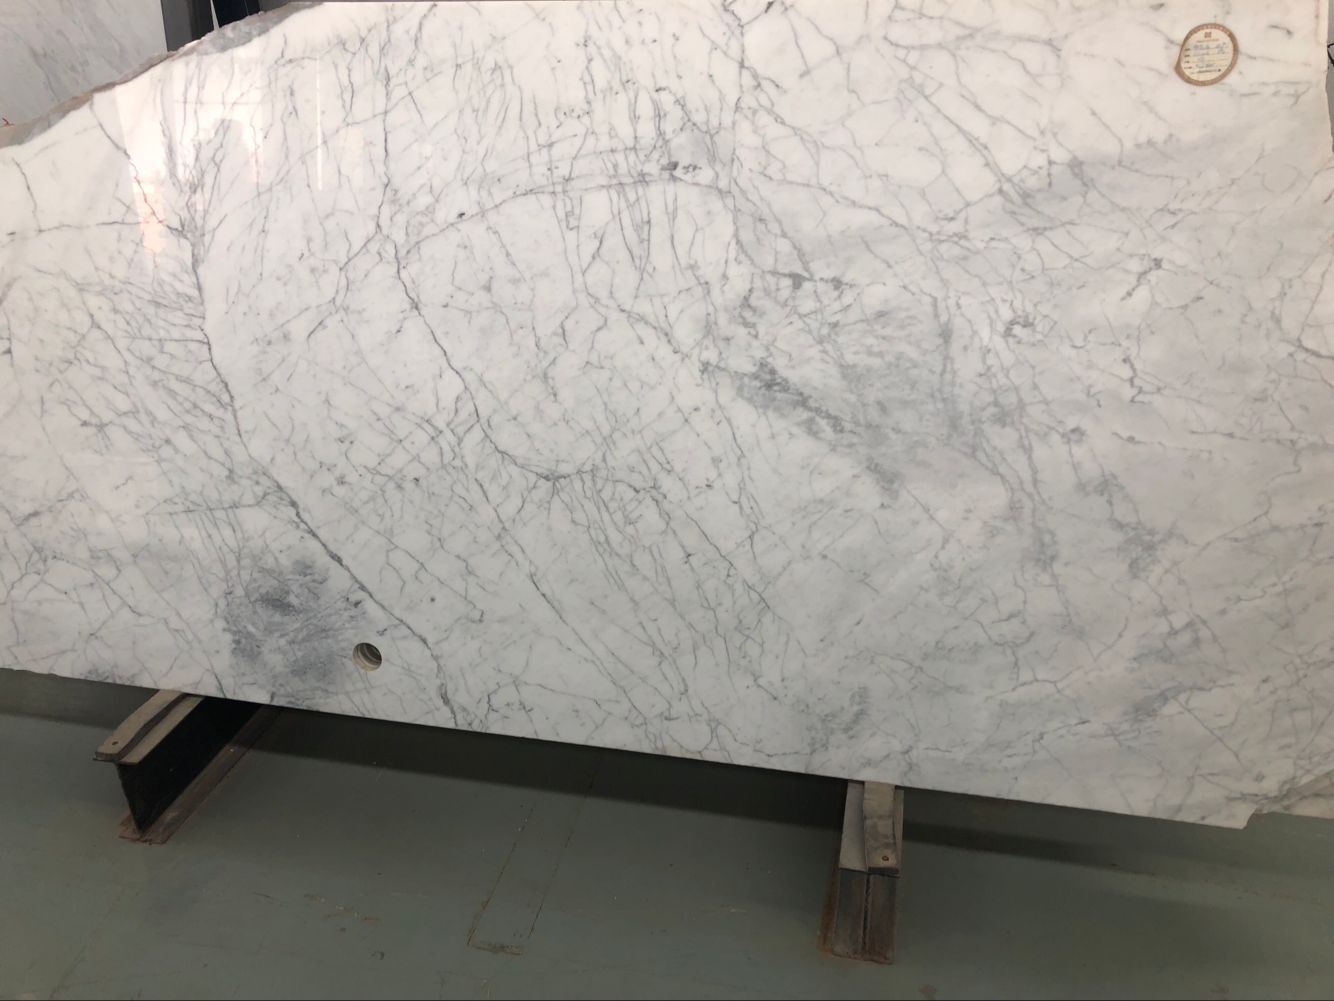 Honed Bianco Carrara Marble Carrara Marble Colors Carrara Polished Marble White Grey Marble Countertop Carrara Bella Marble Carrera Marble Slab Cost